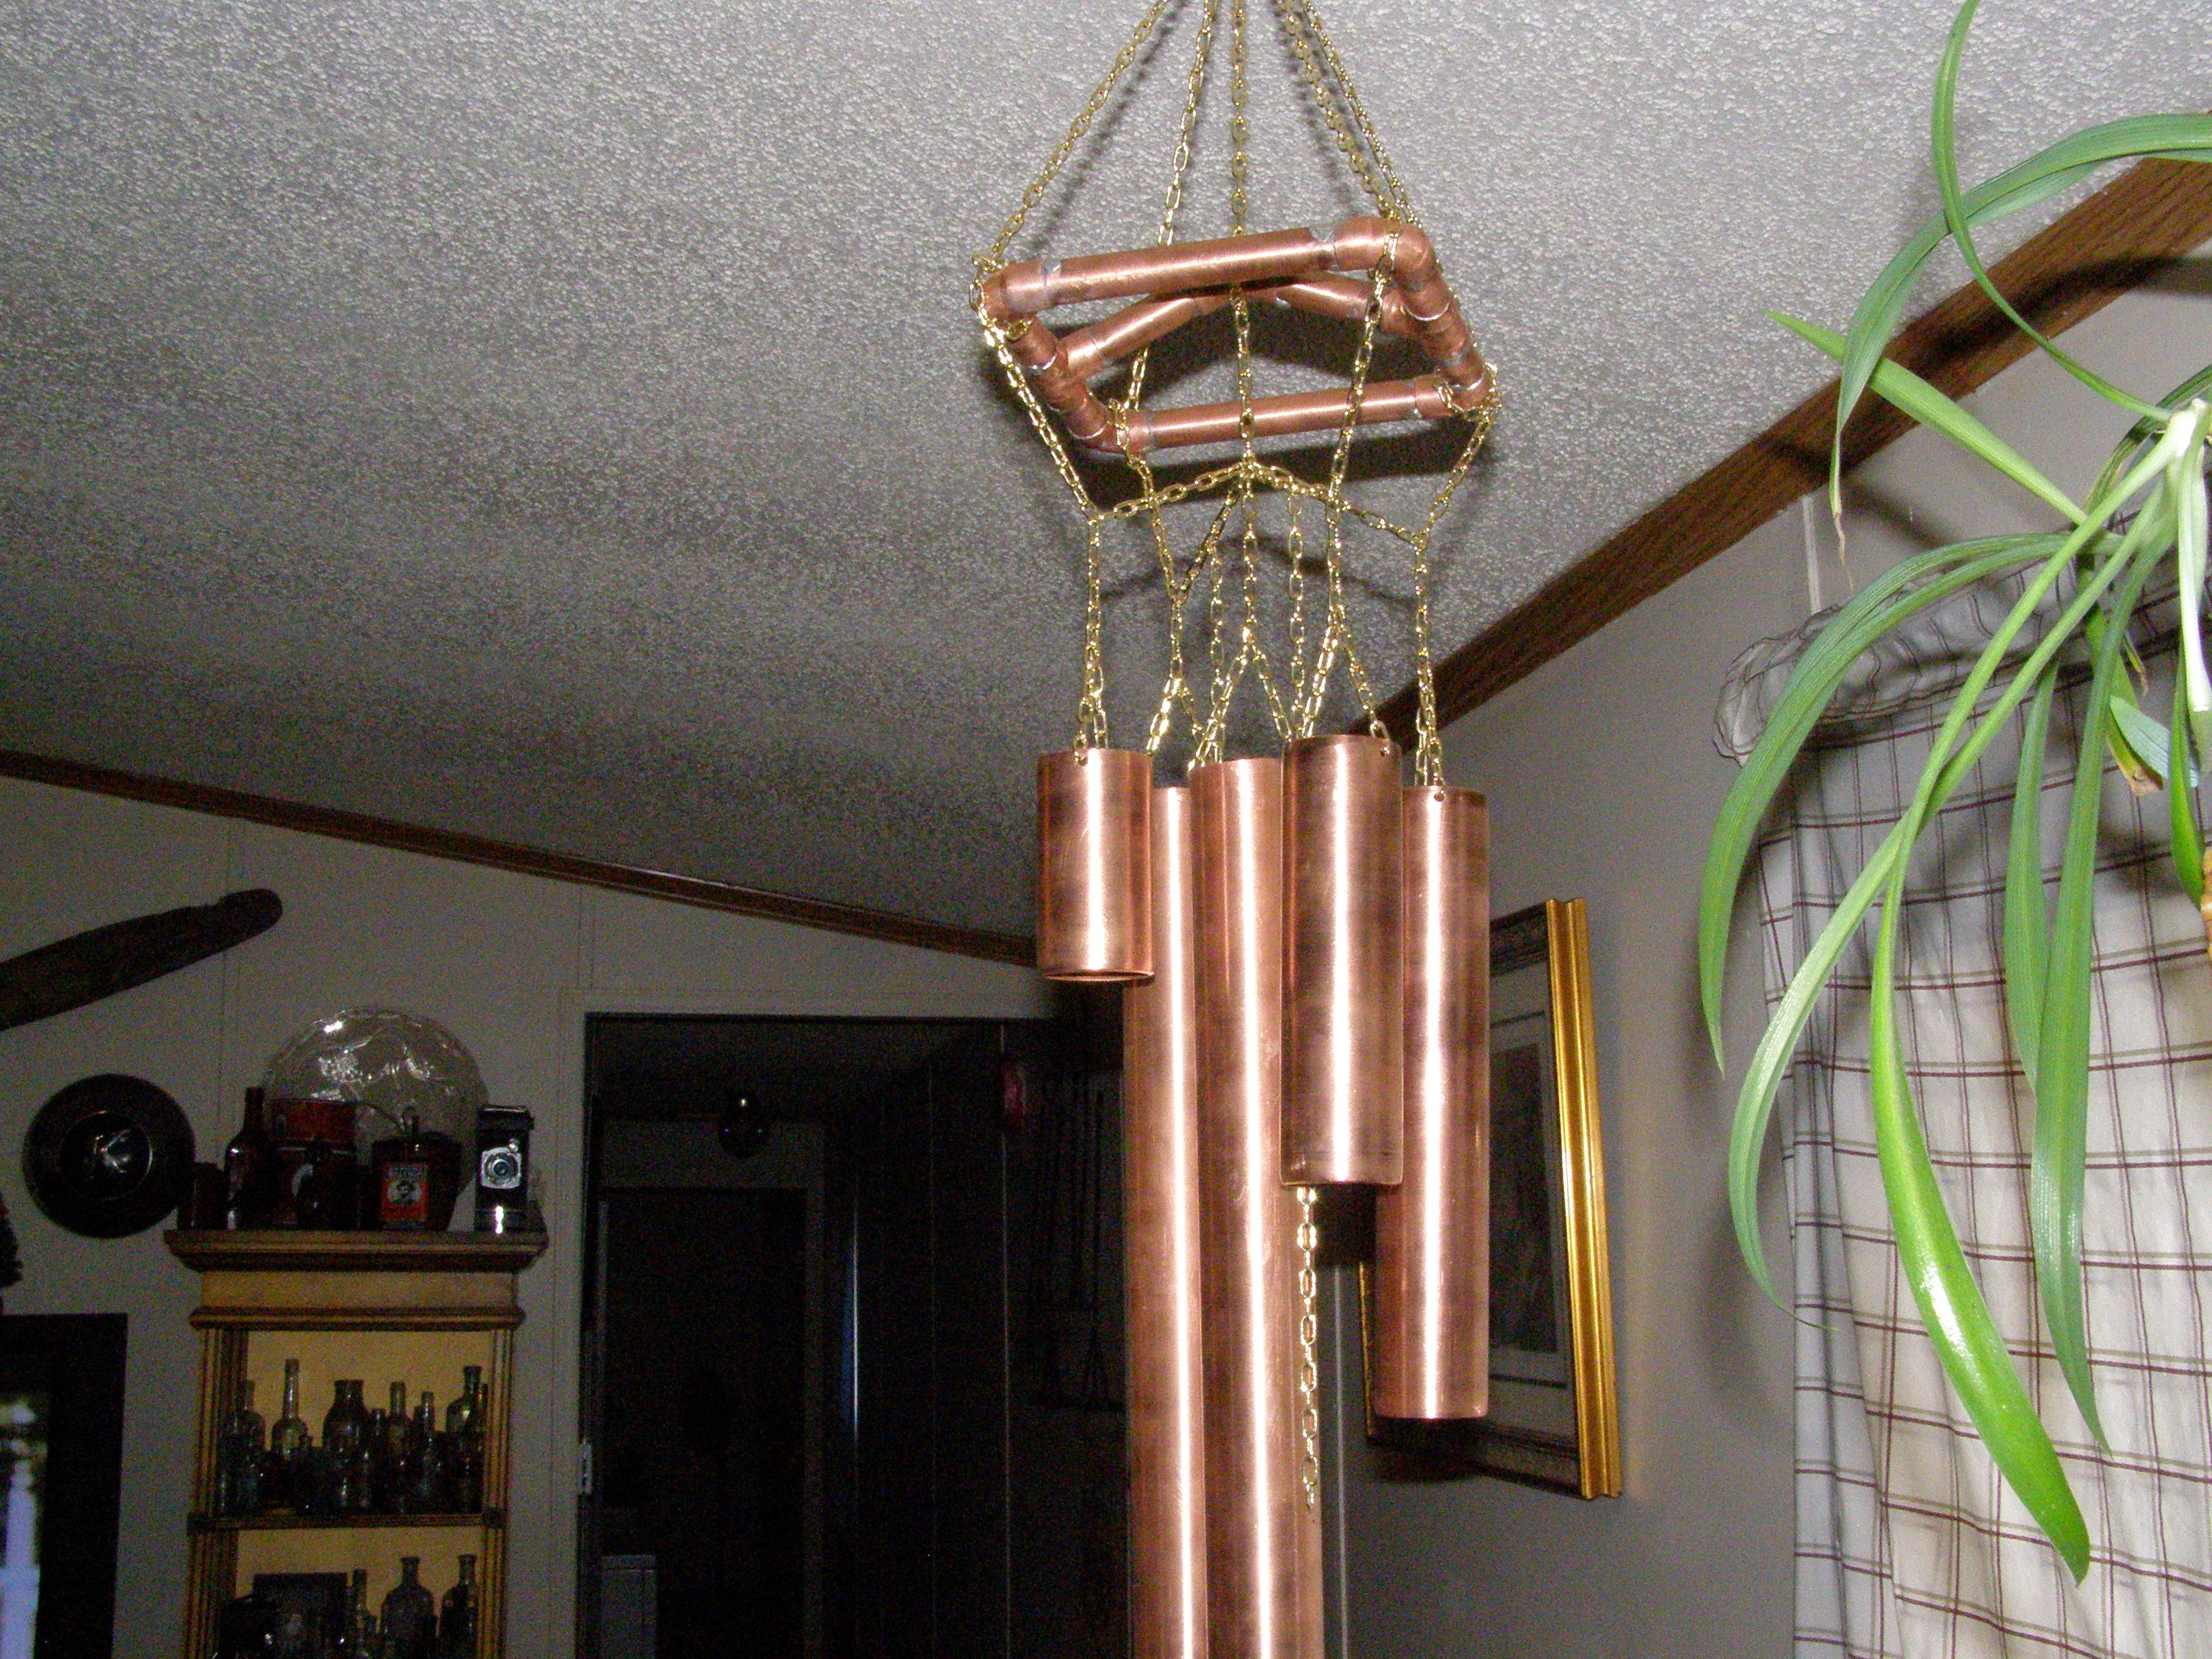 Large Copper Wind Chimes.